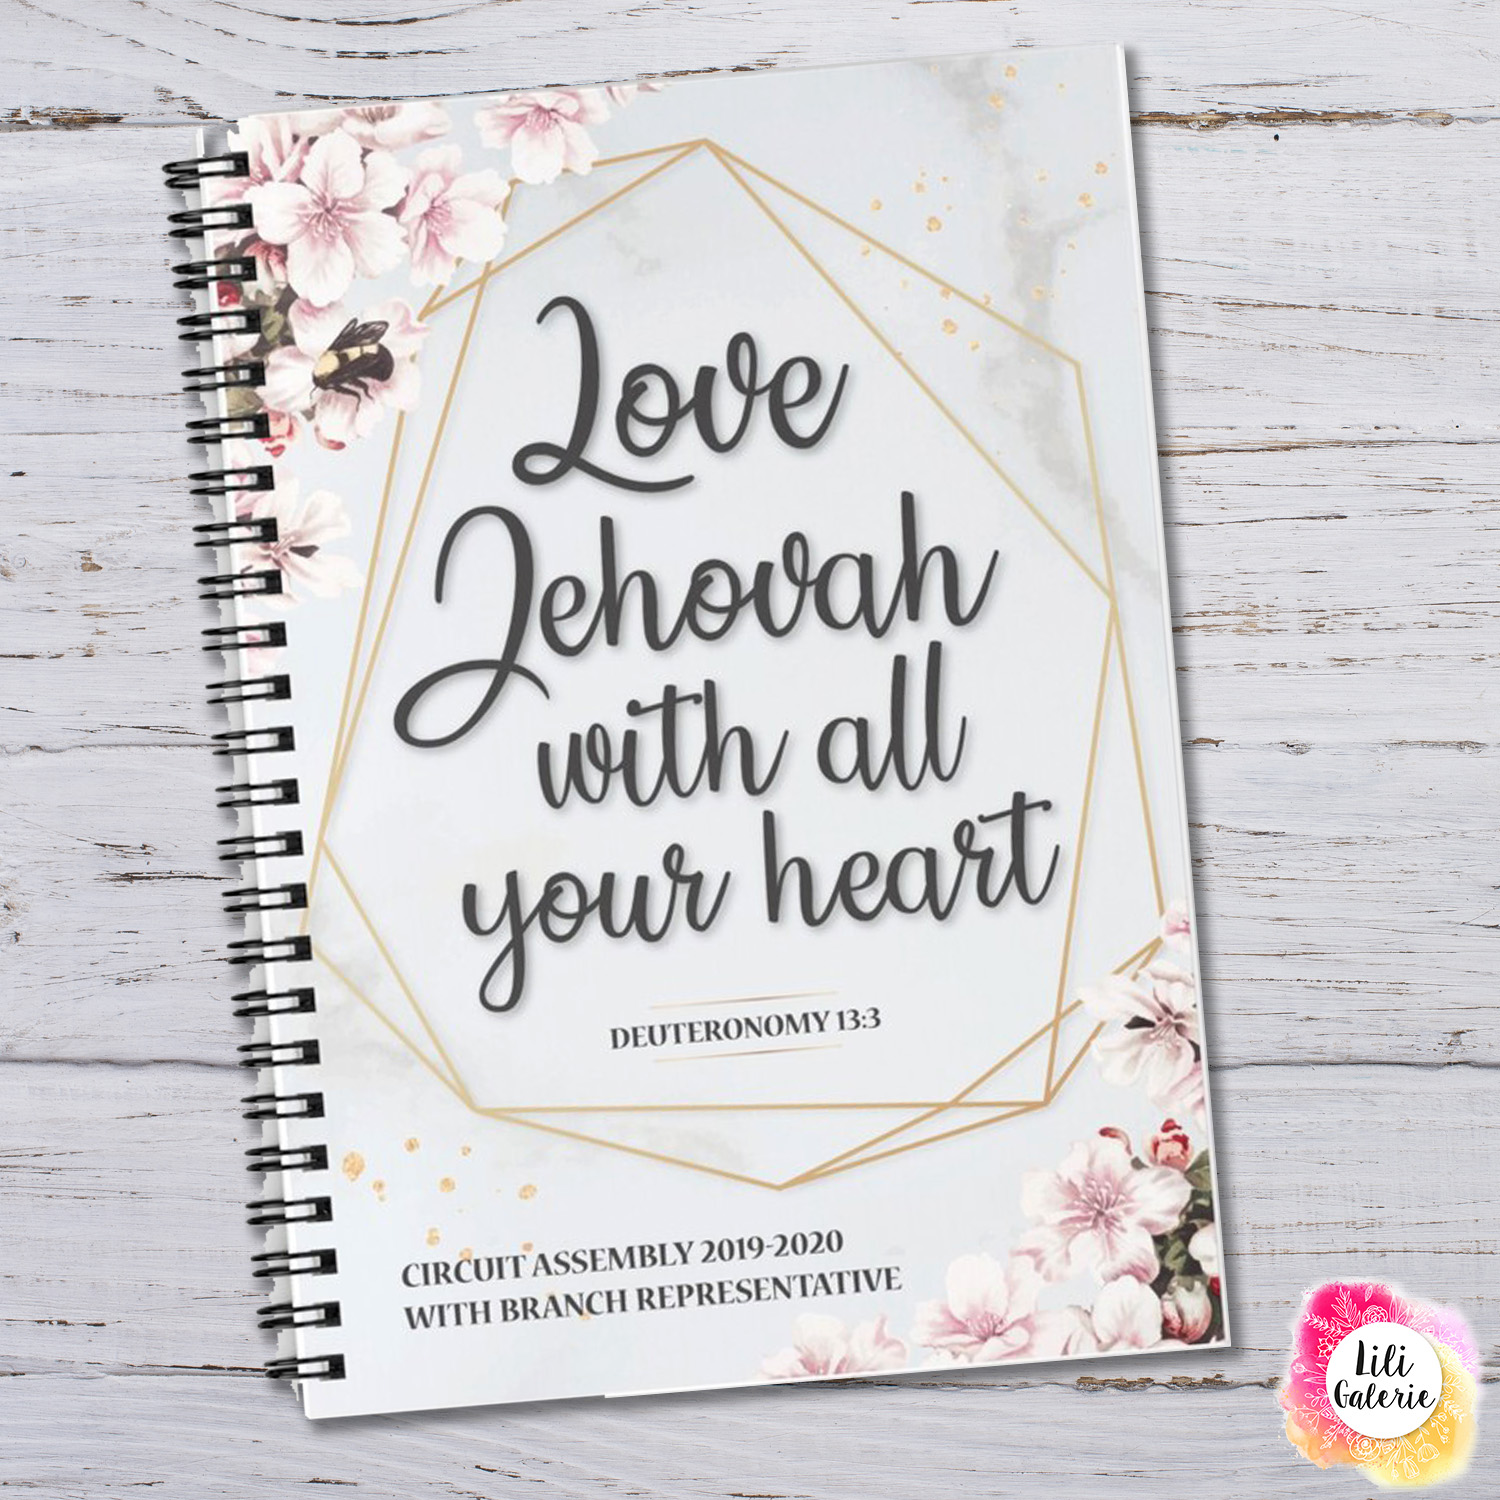 Circuit Assembly notebook - Love Jehovah with all your heart